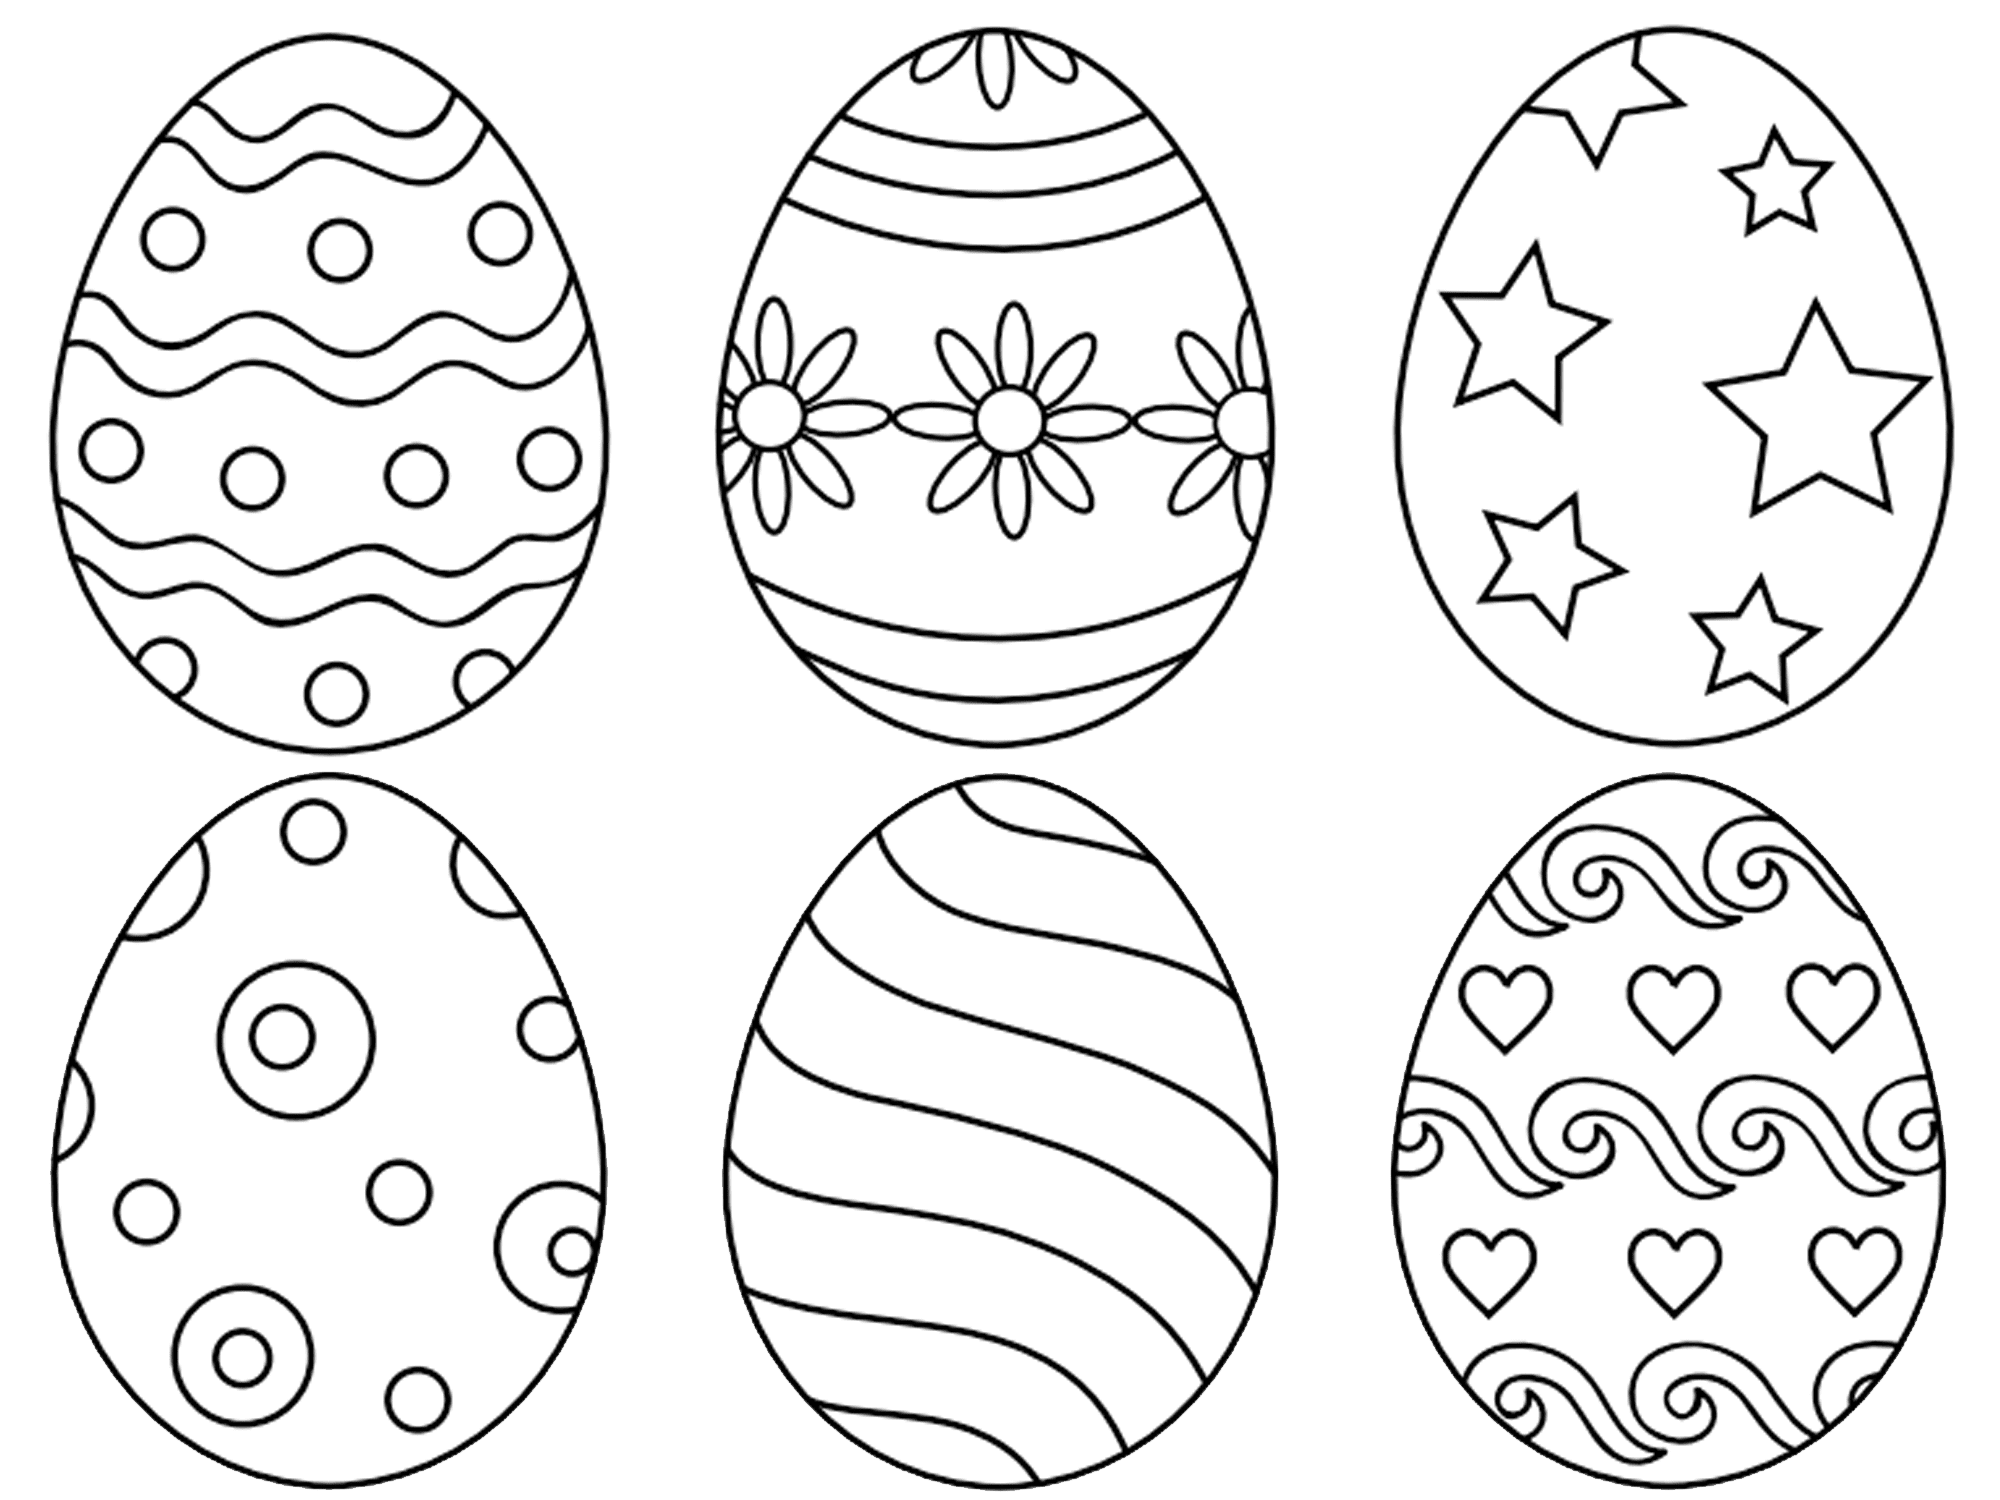 7 Places For Free Printable Easter Egg Coloring Pages